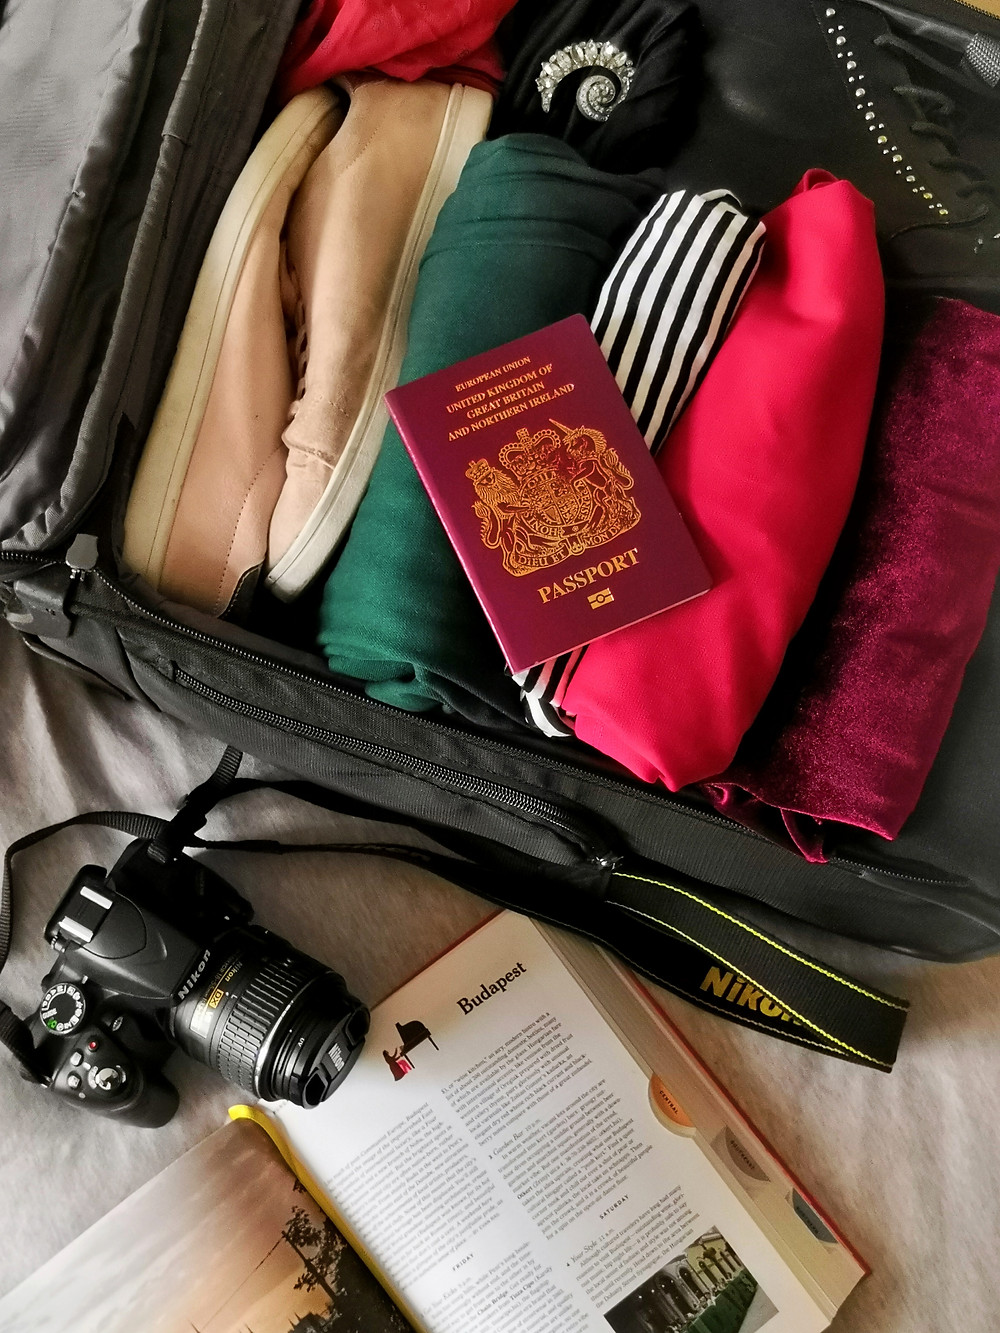 Packing for Budapest - a capsule wardrobe for a city break